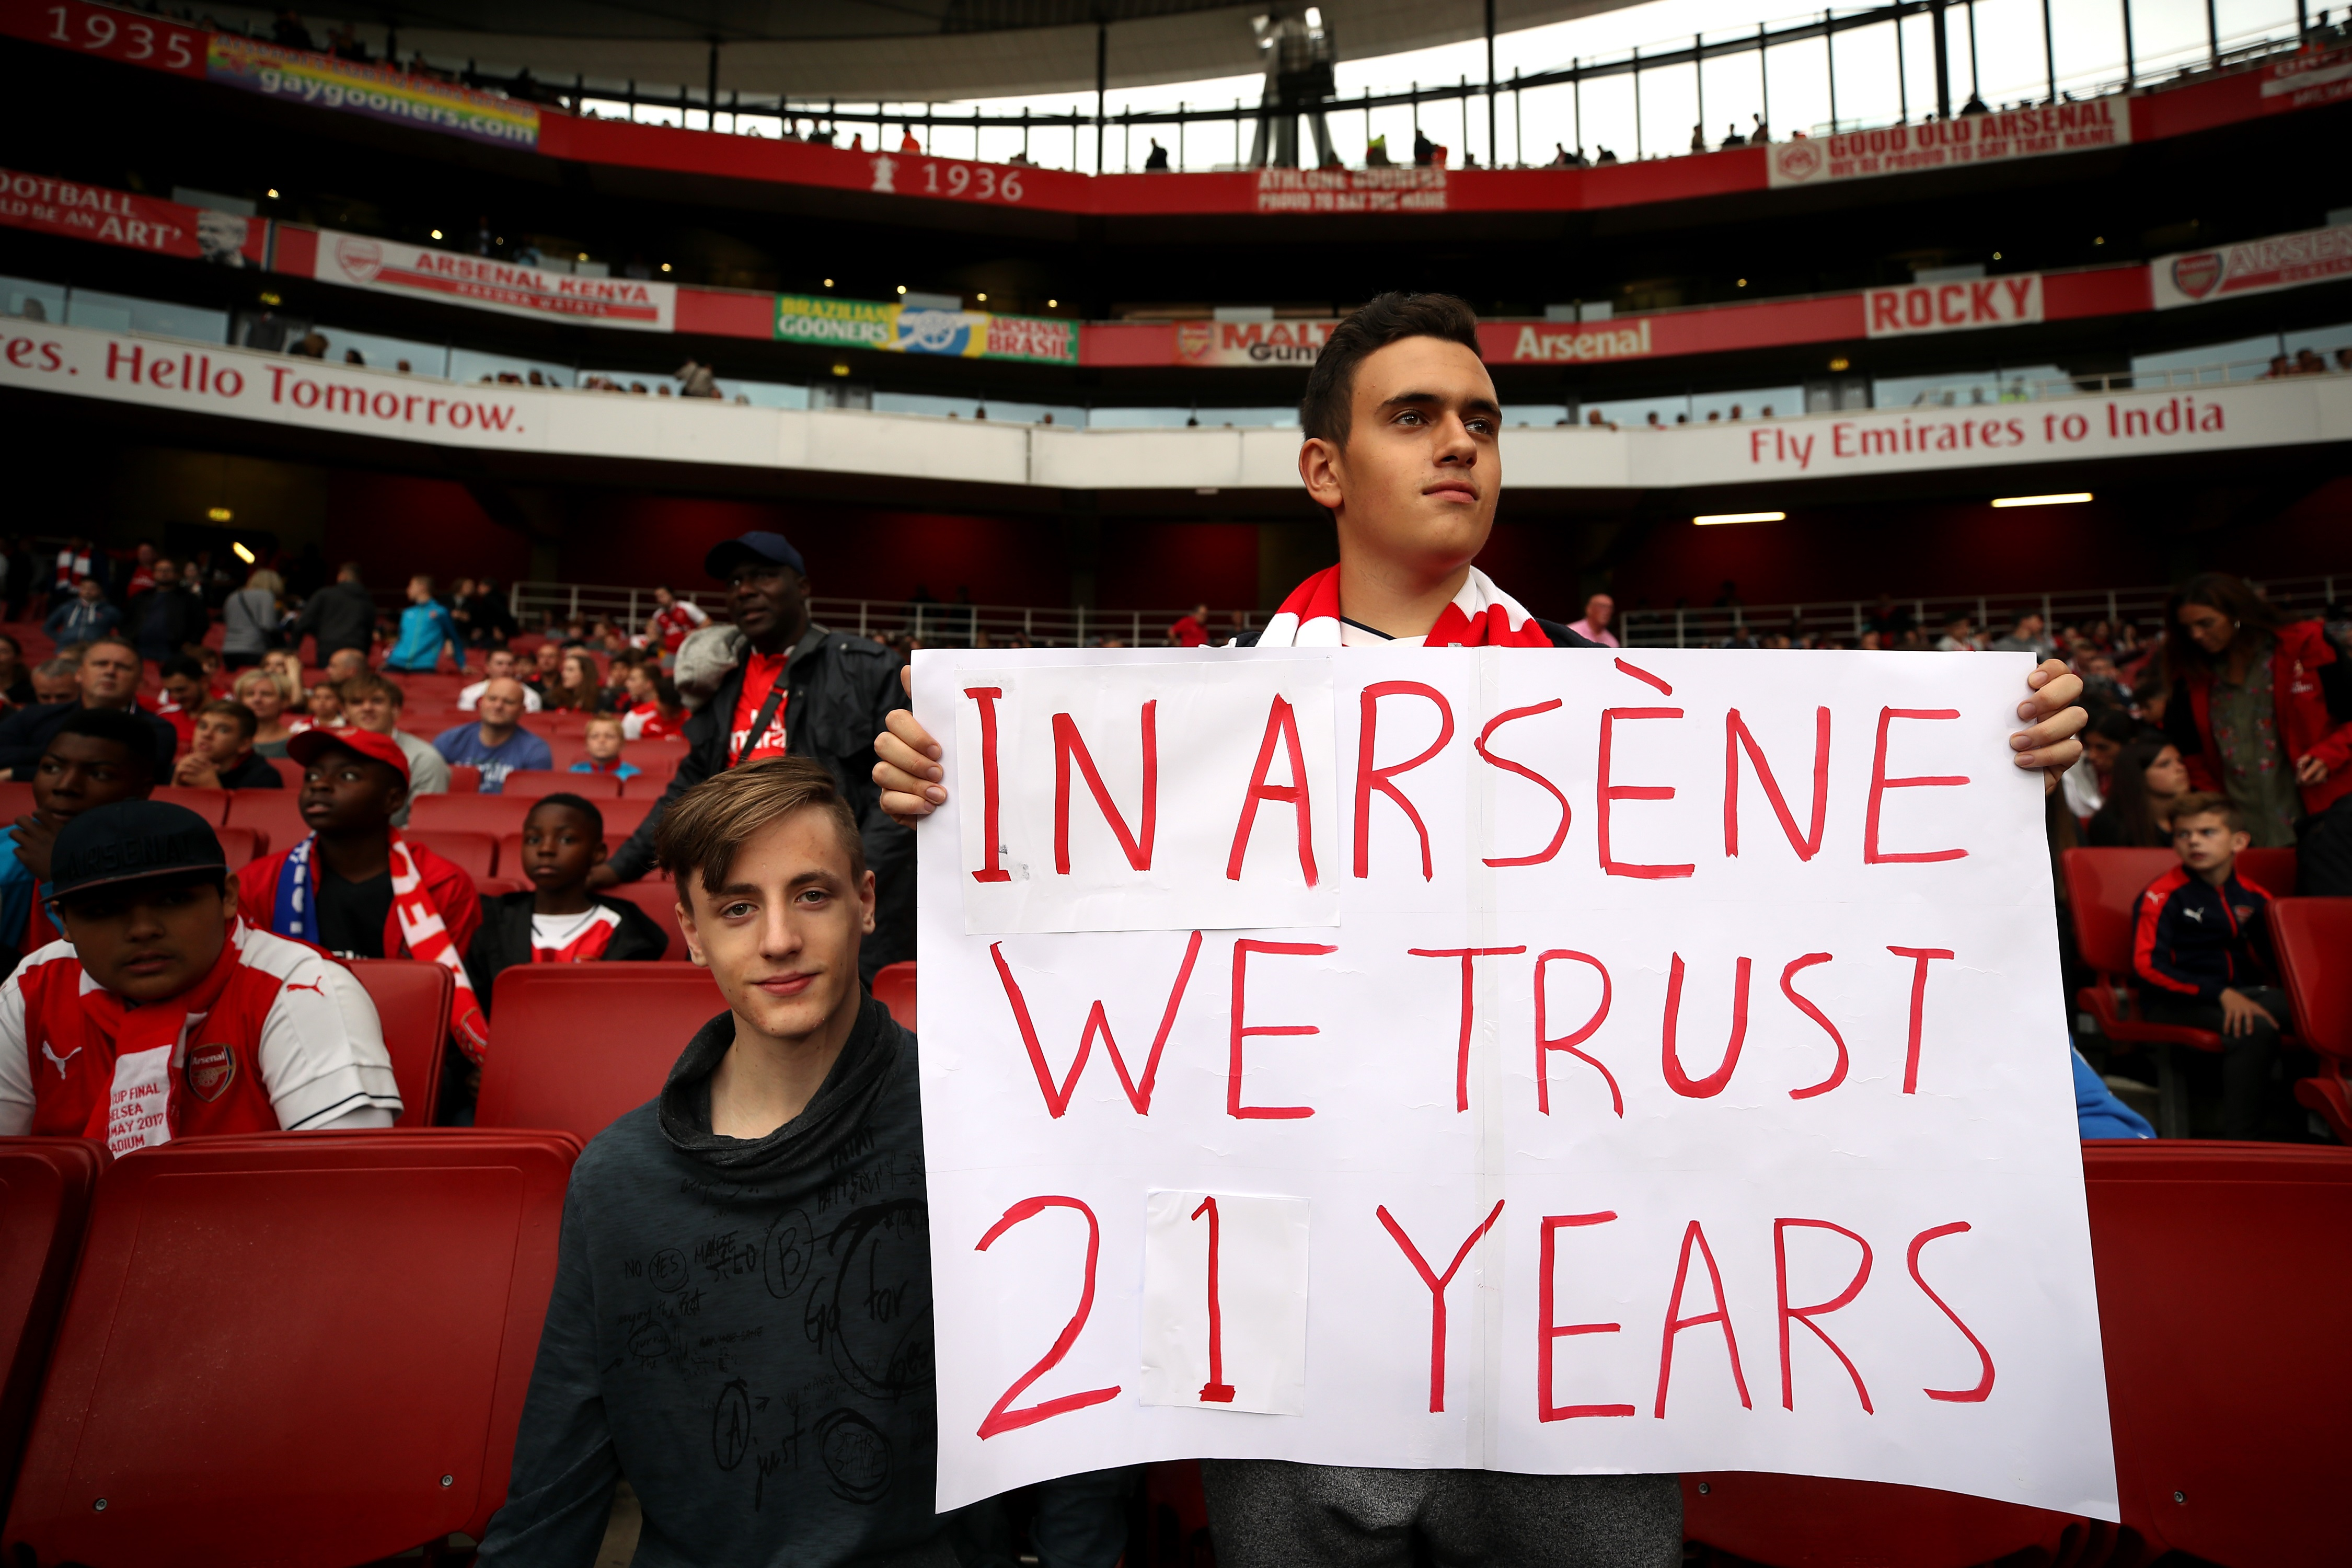 An Arsenal fan in the stands